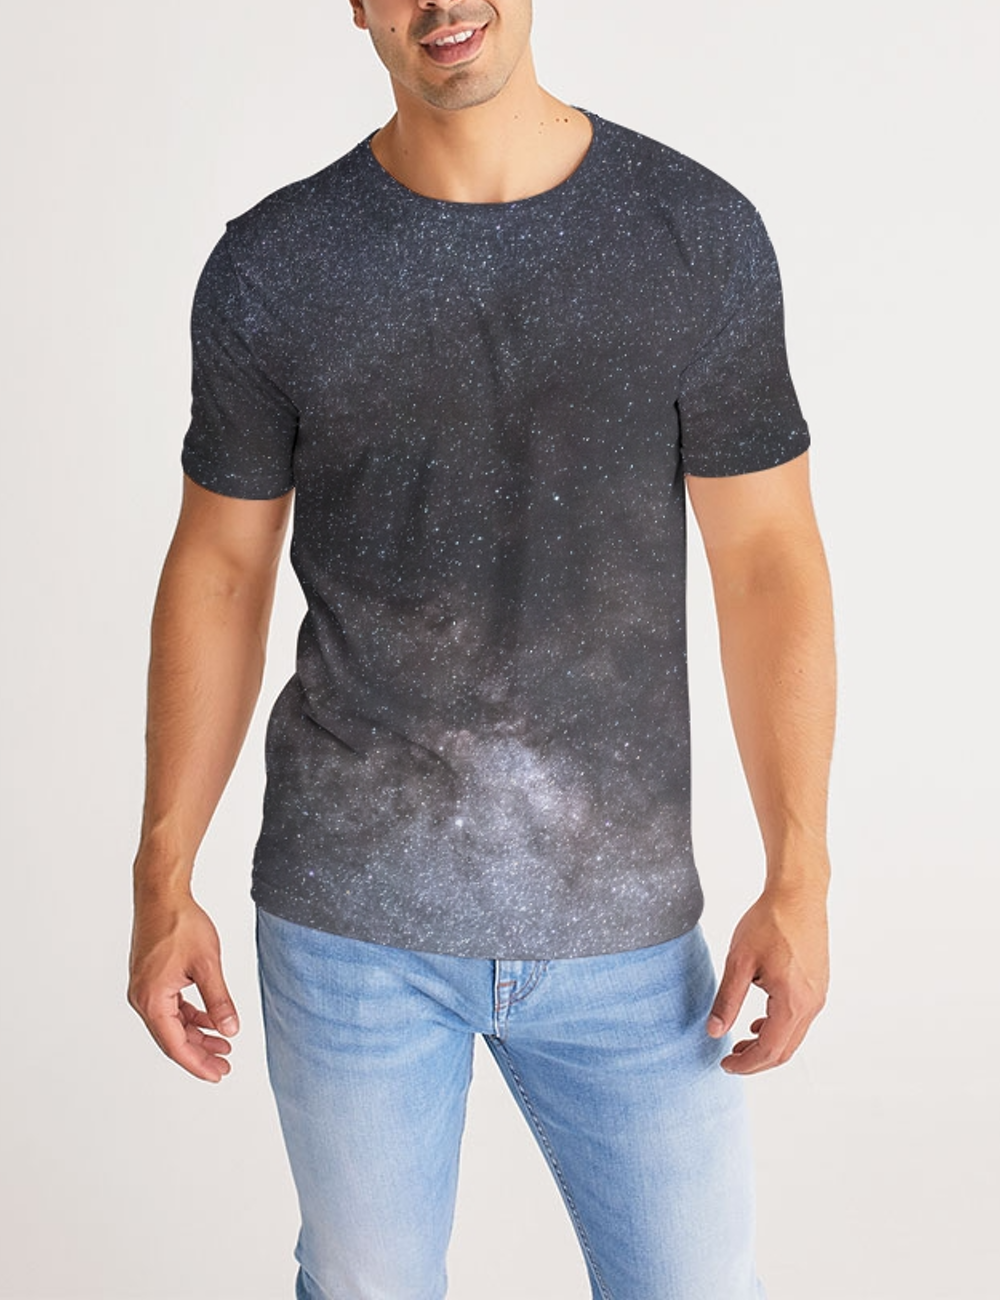 The Great Constellation | Men's Sublimated T-Shirt